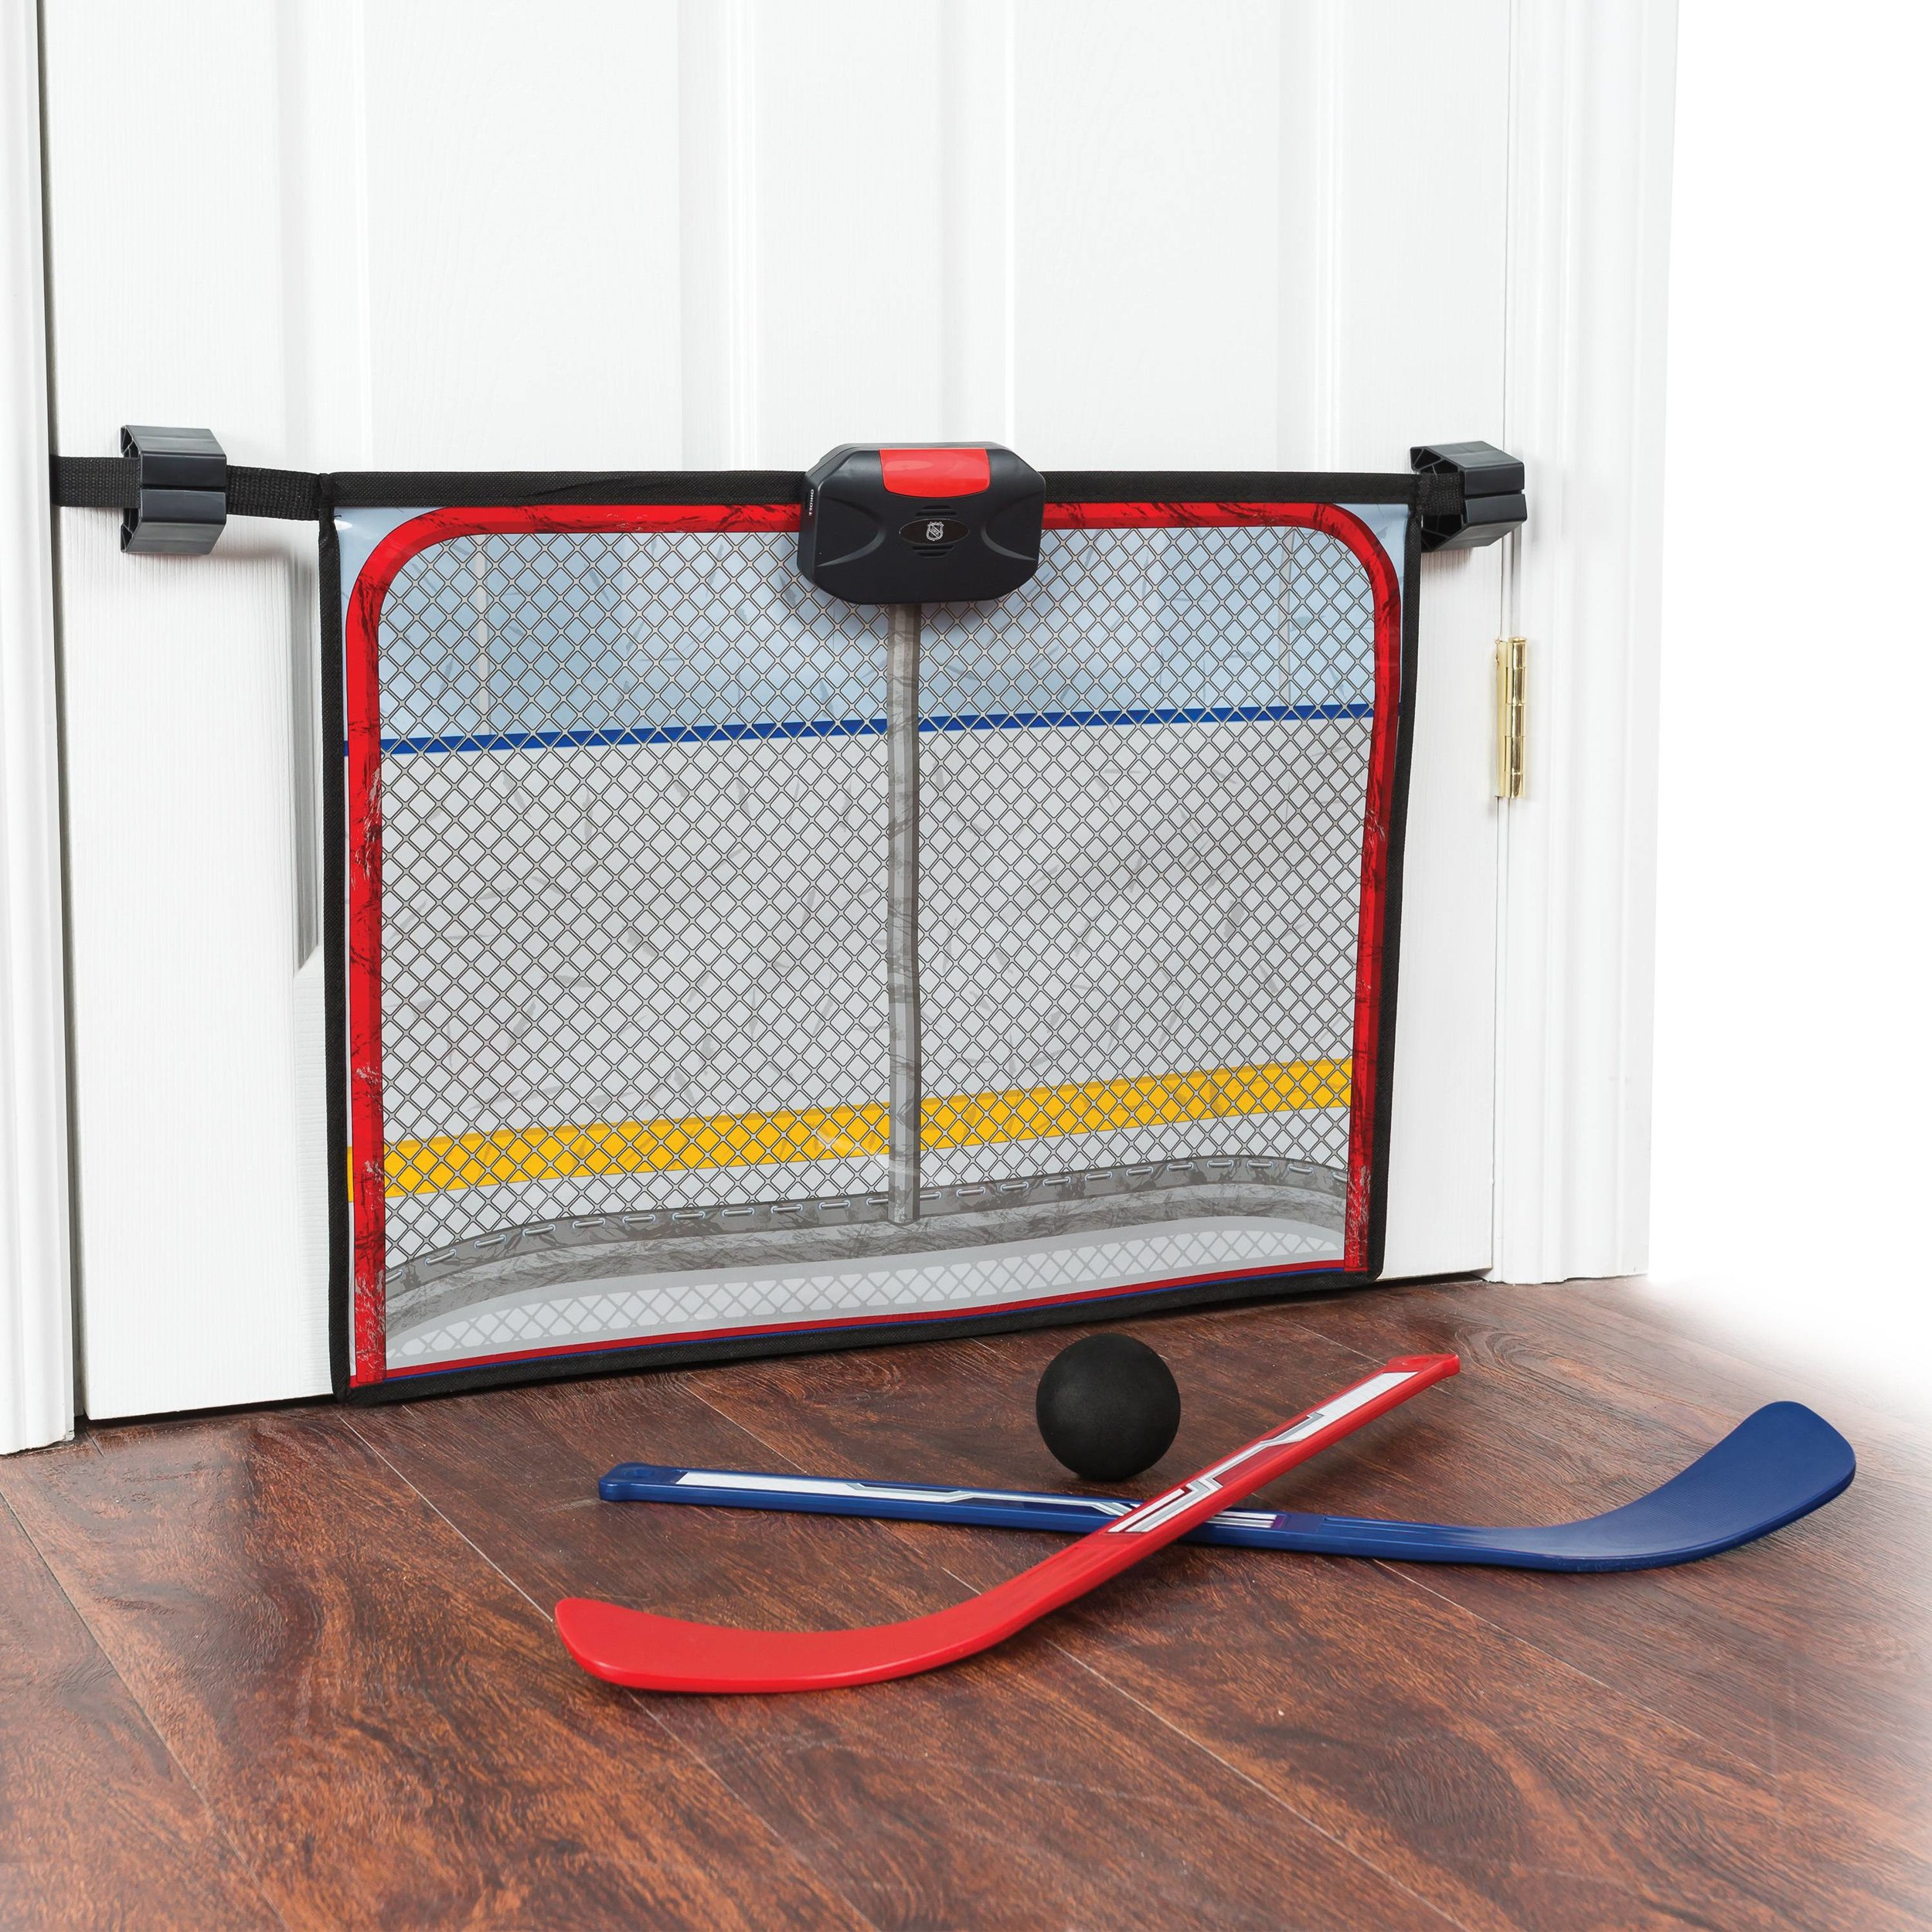 HOCKEY GAME... - because you can introduce them to different sports